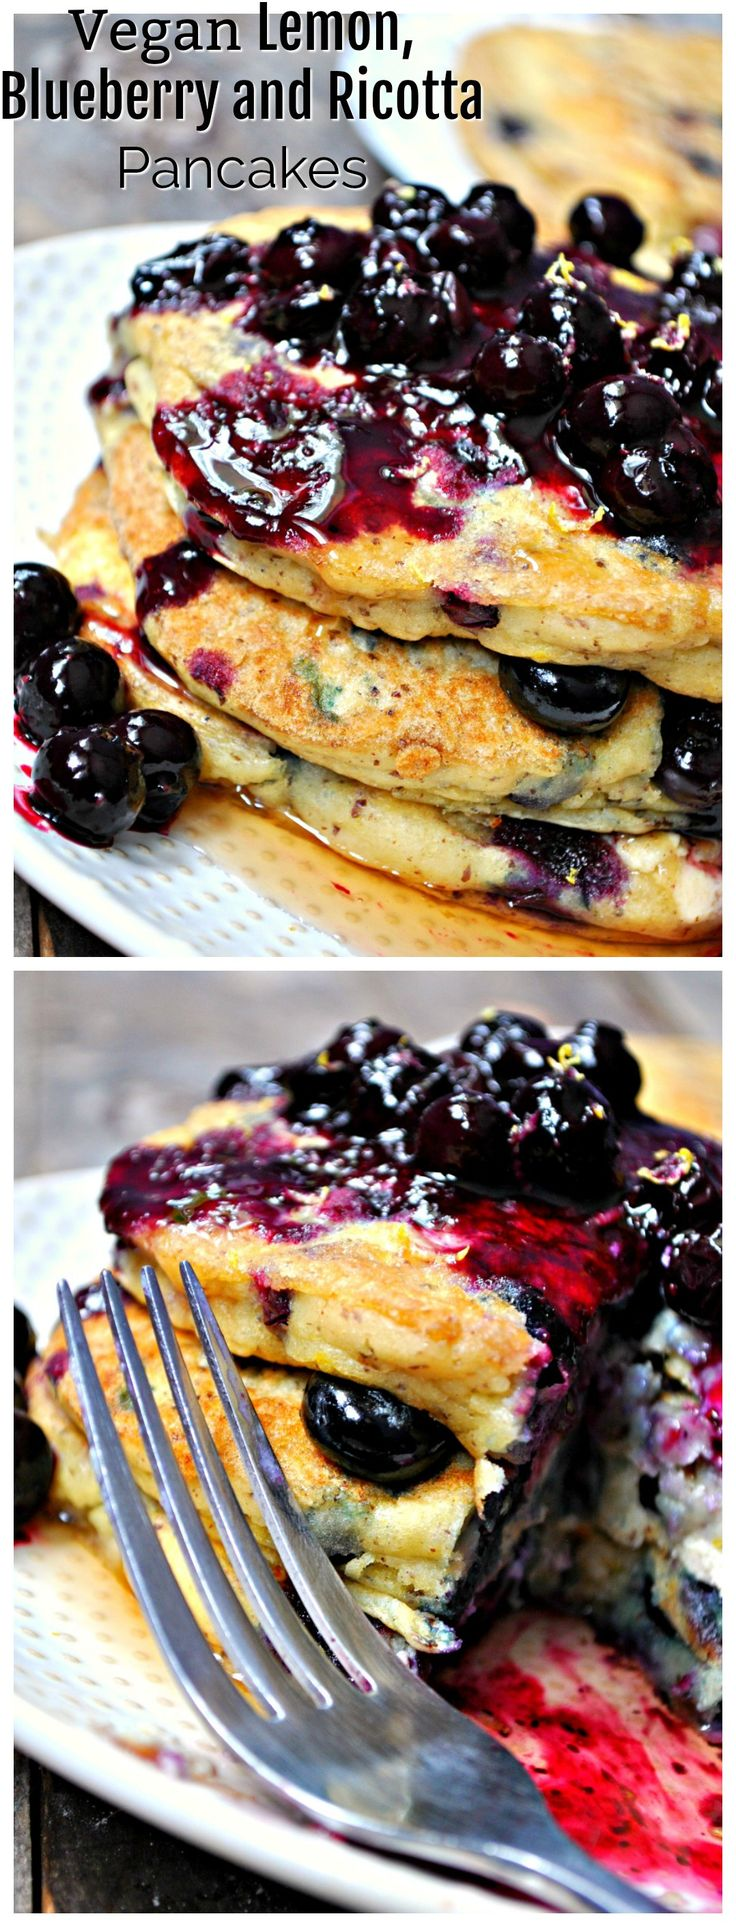 Vegan Lemon, Blueberry and Ricotta Pancakes